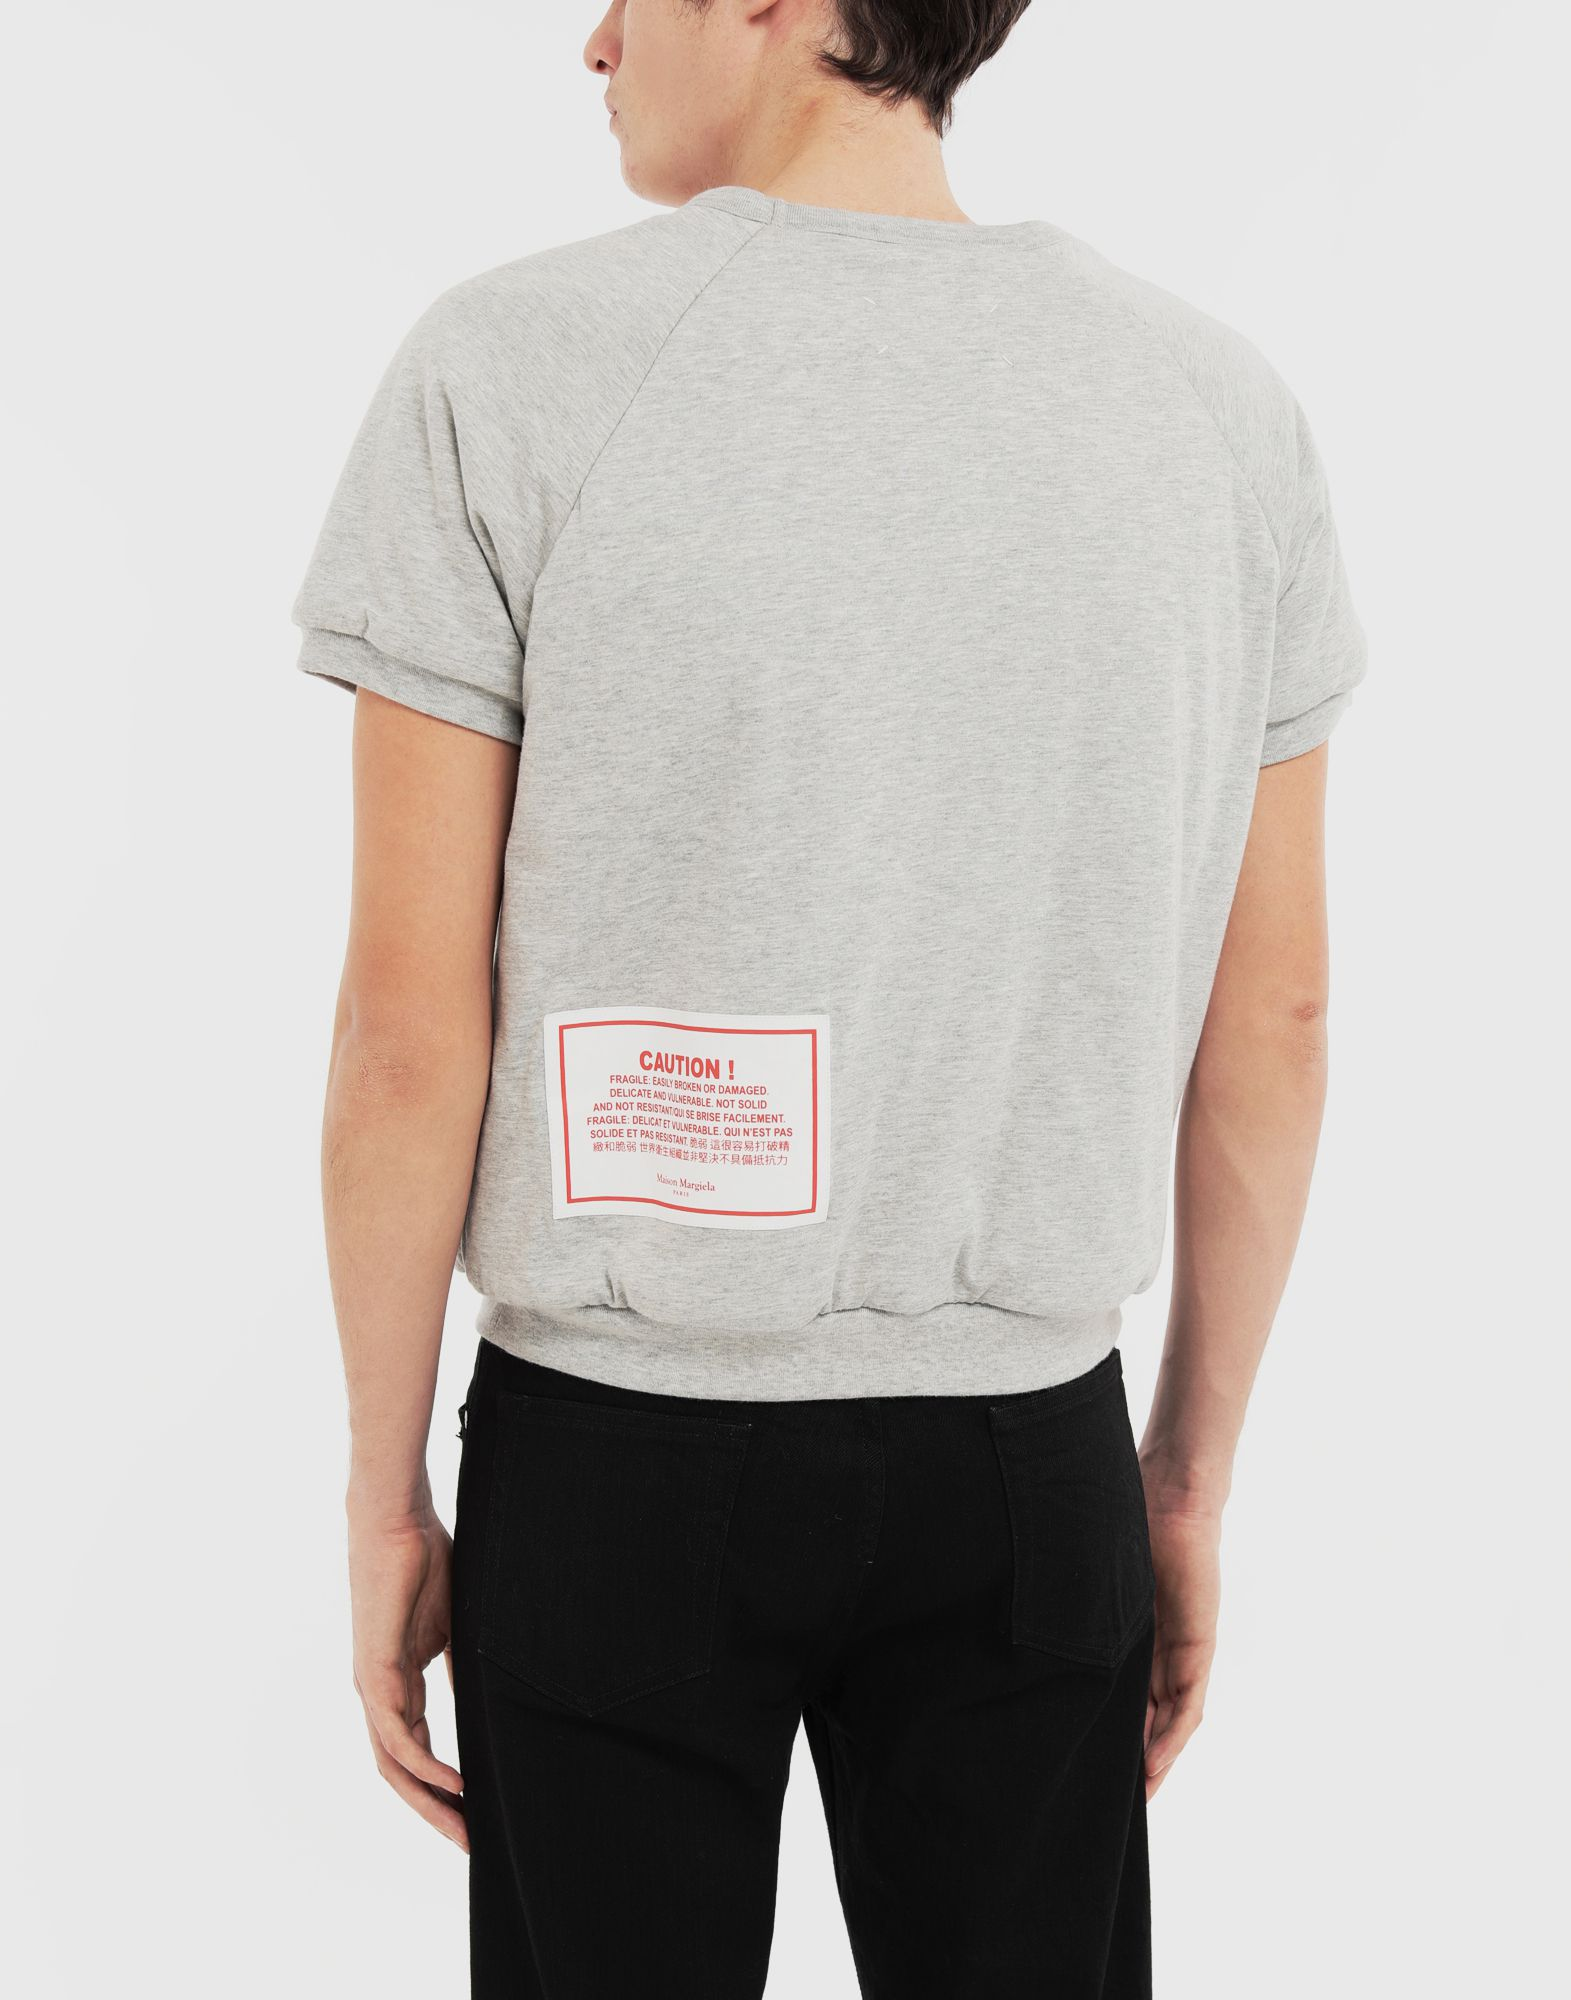 MAISON MARGIELA Haut 'Caution' Sweatshirt Homme e